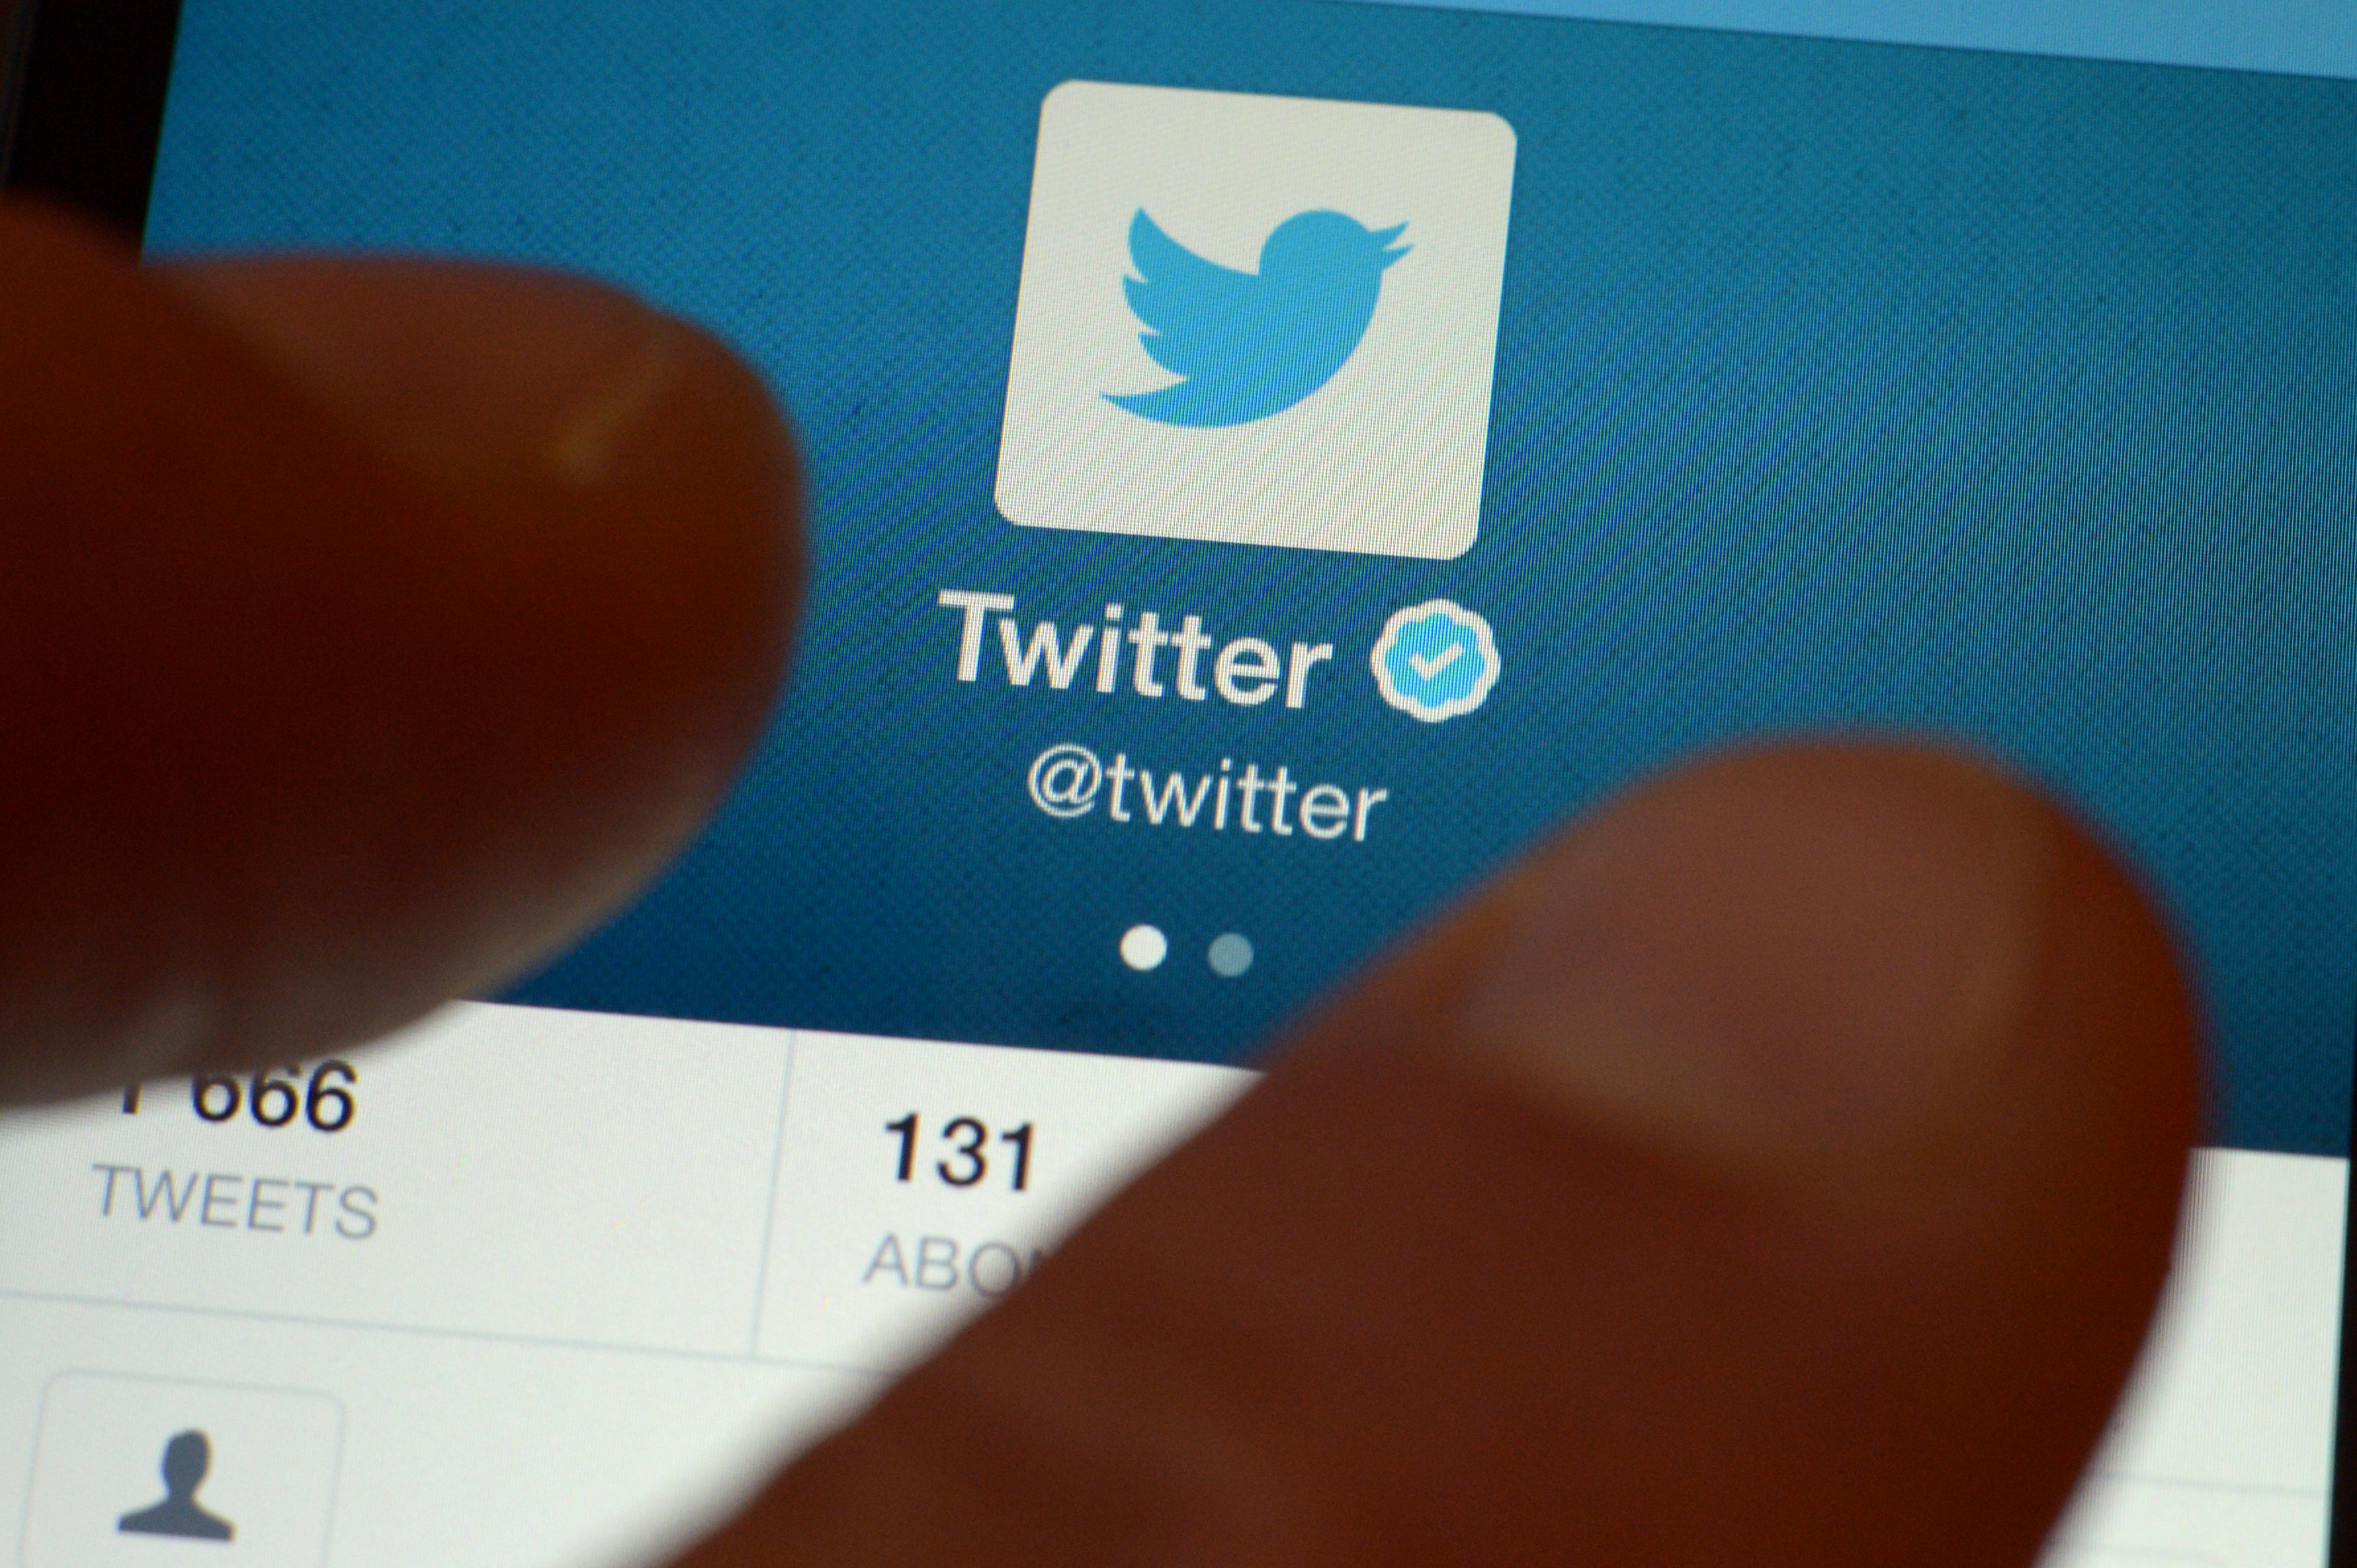 Twitter snaps up 900 patents from IBM for undisclosed sum